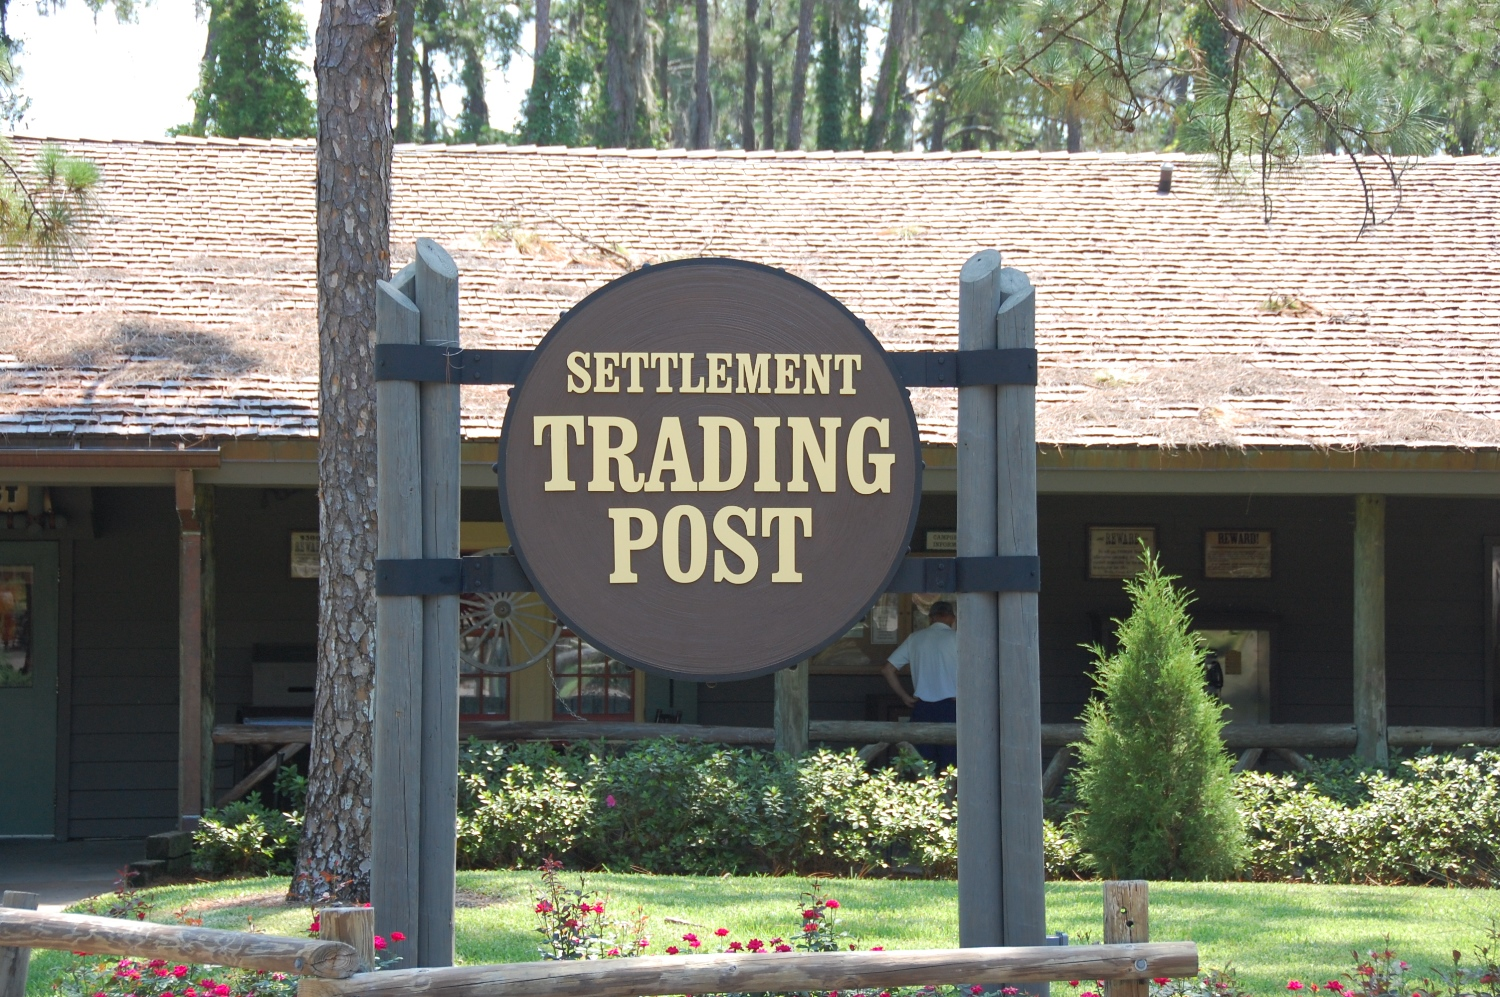 Disney's Fort Wilderness Resort and Campground Settlement Trading Post